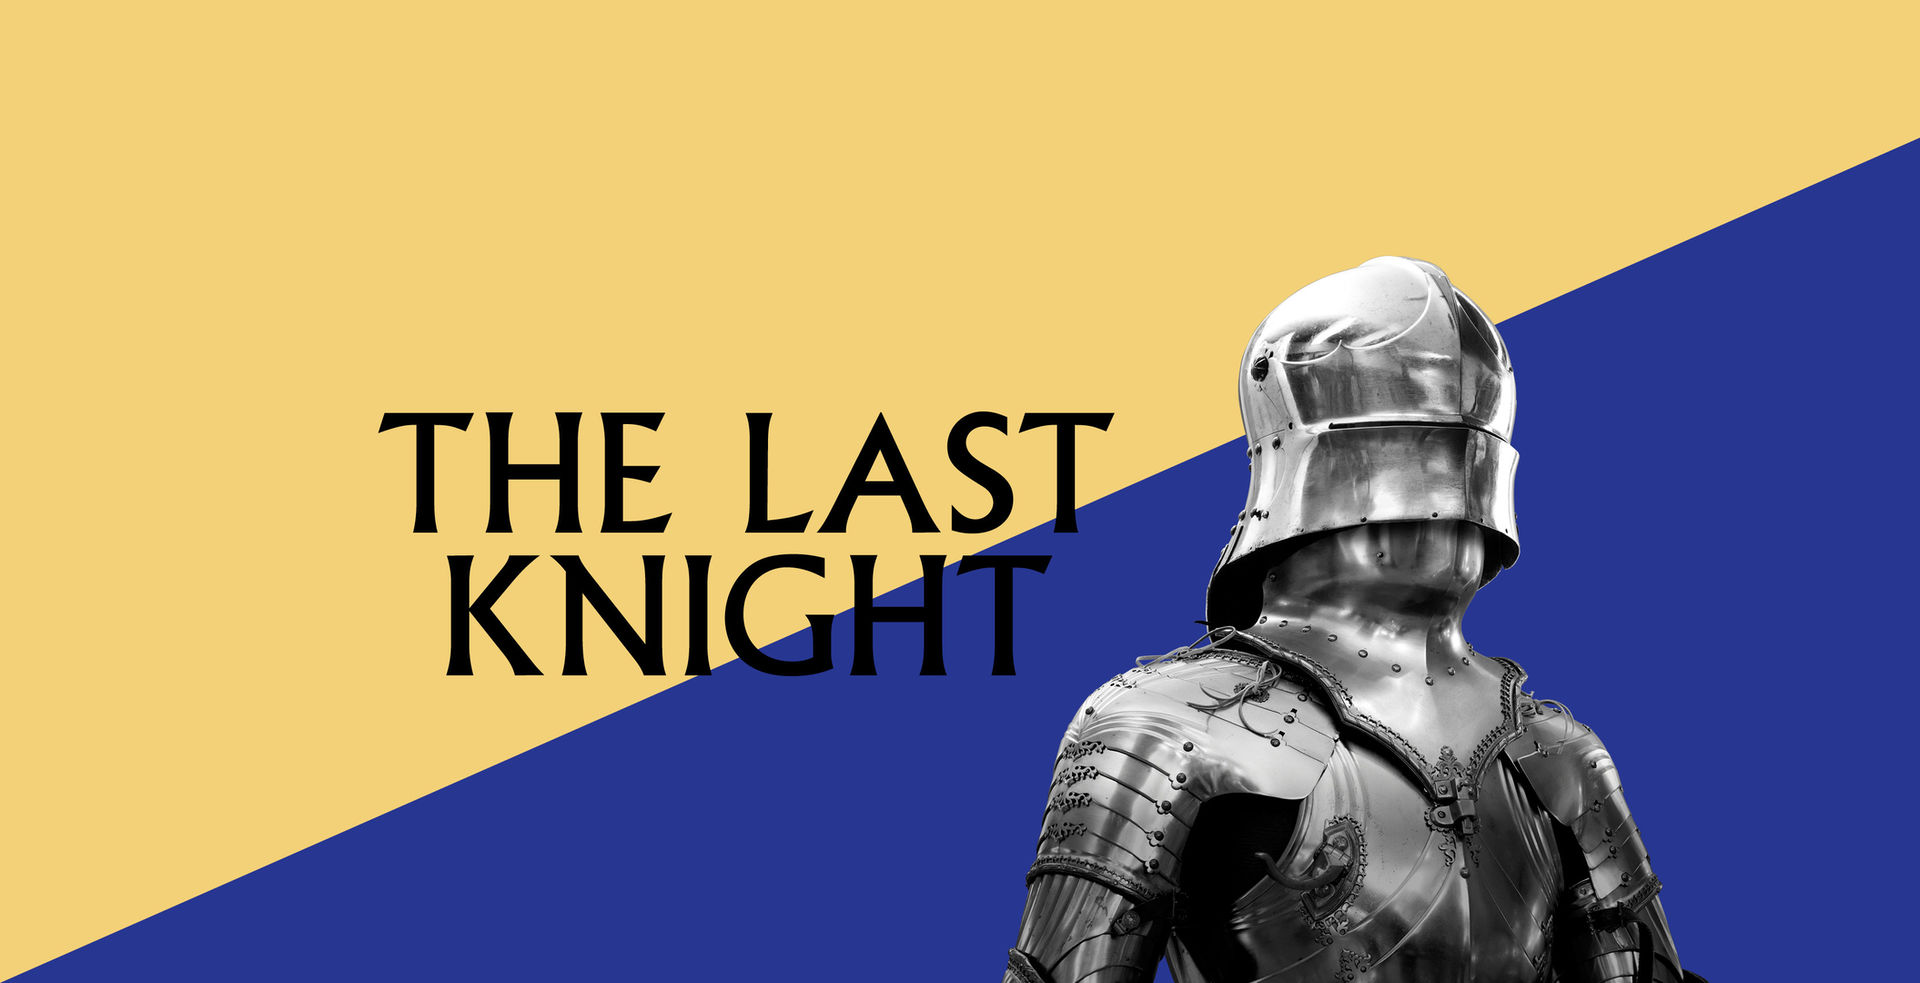 the last knight the art armor and ambition of maximilian i the metropolitan museum of art. Black Bedroom Furniture Sets. Home Design Ideas